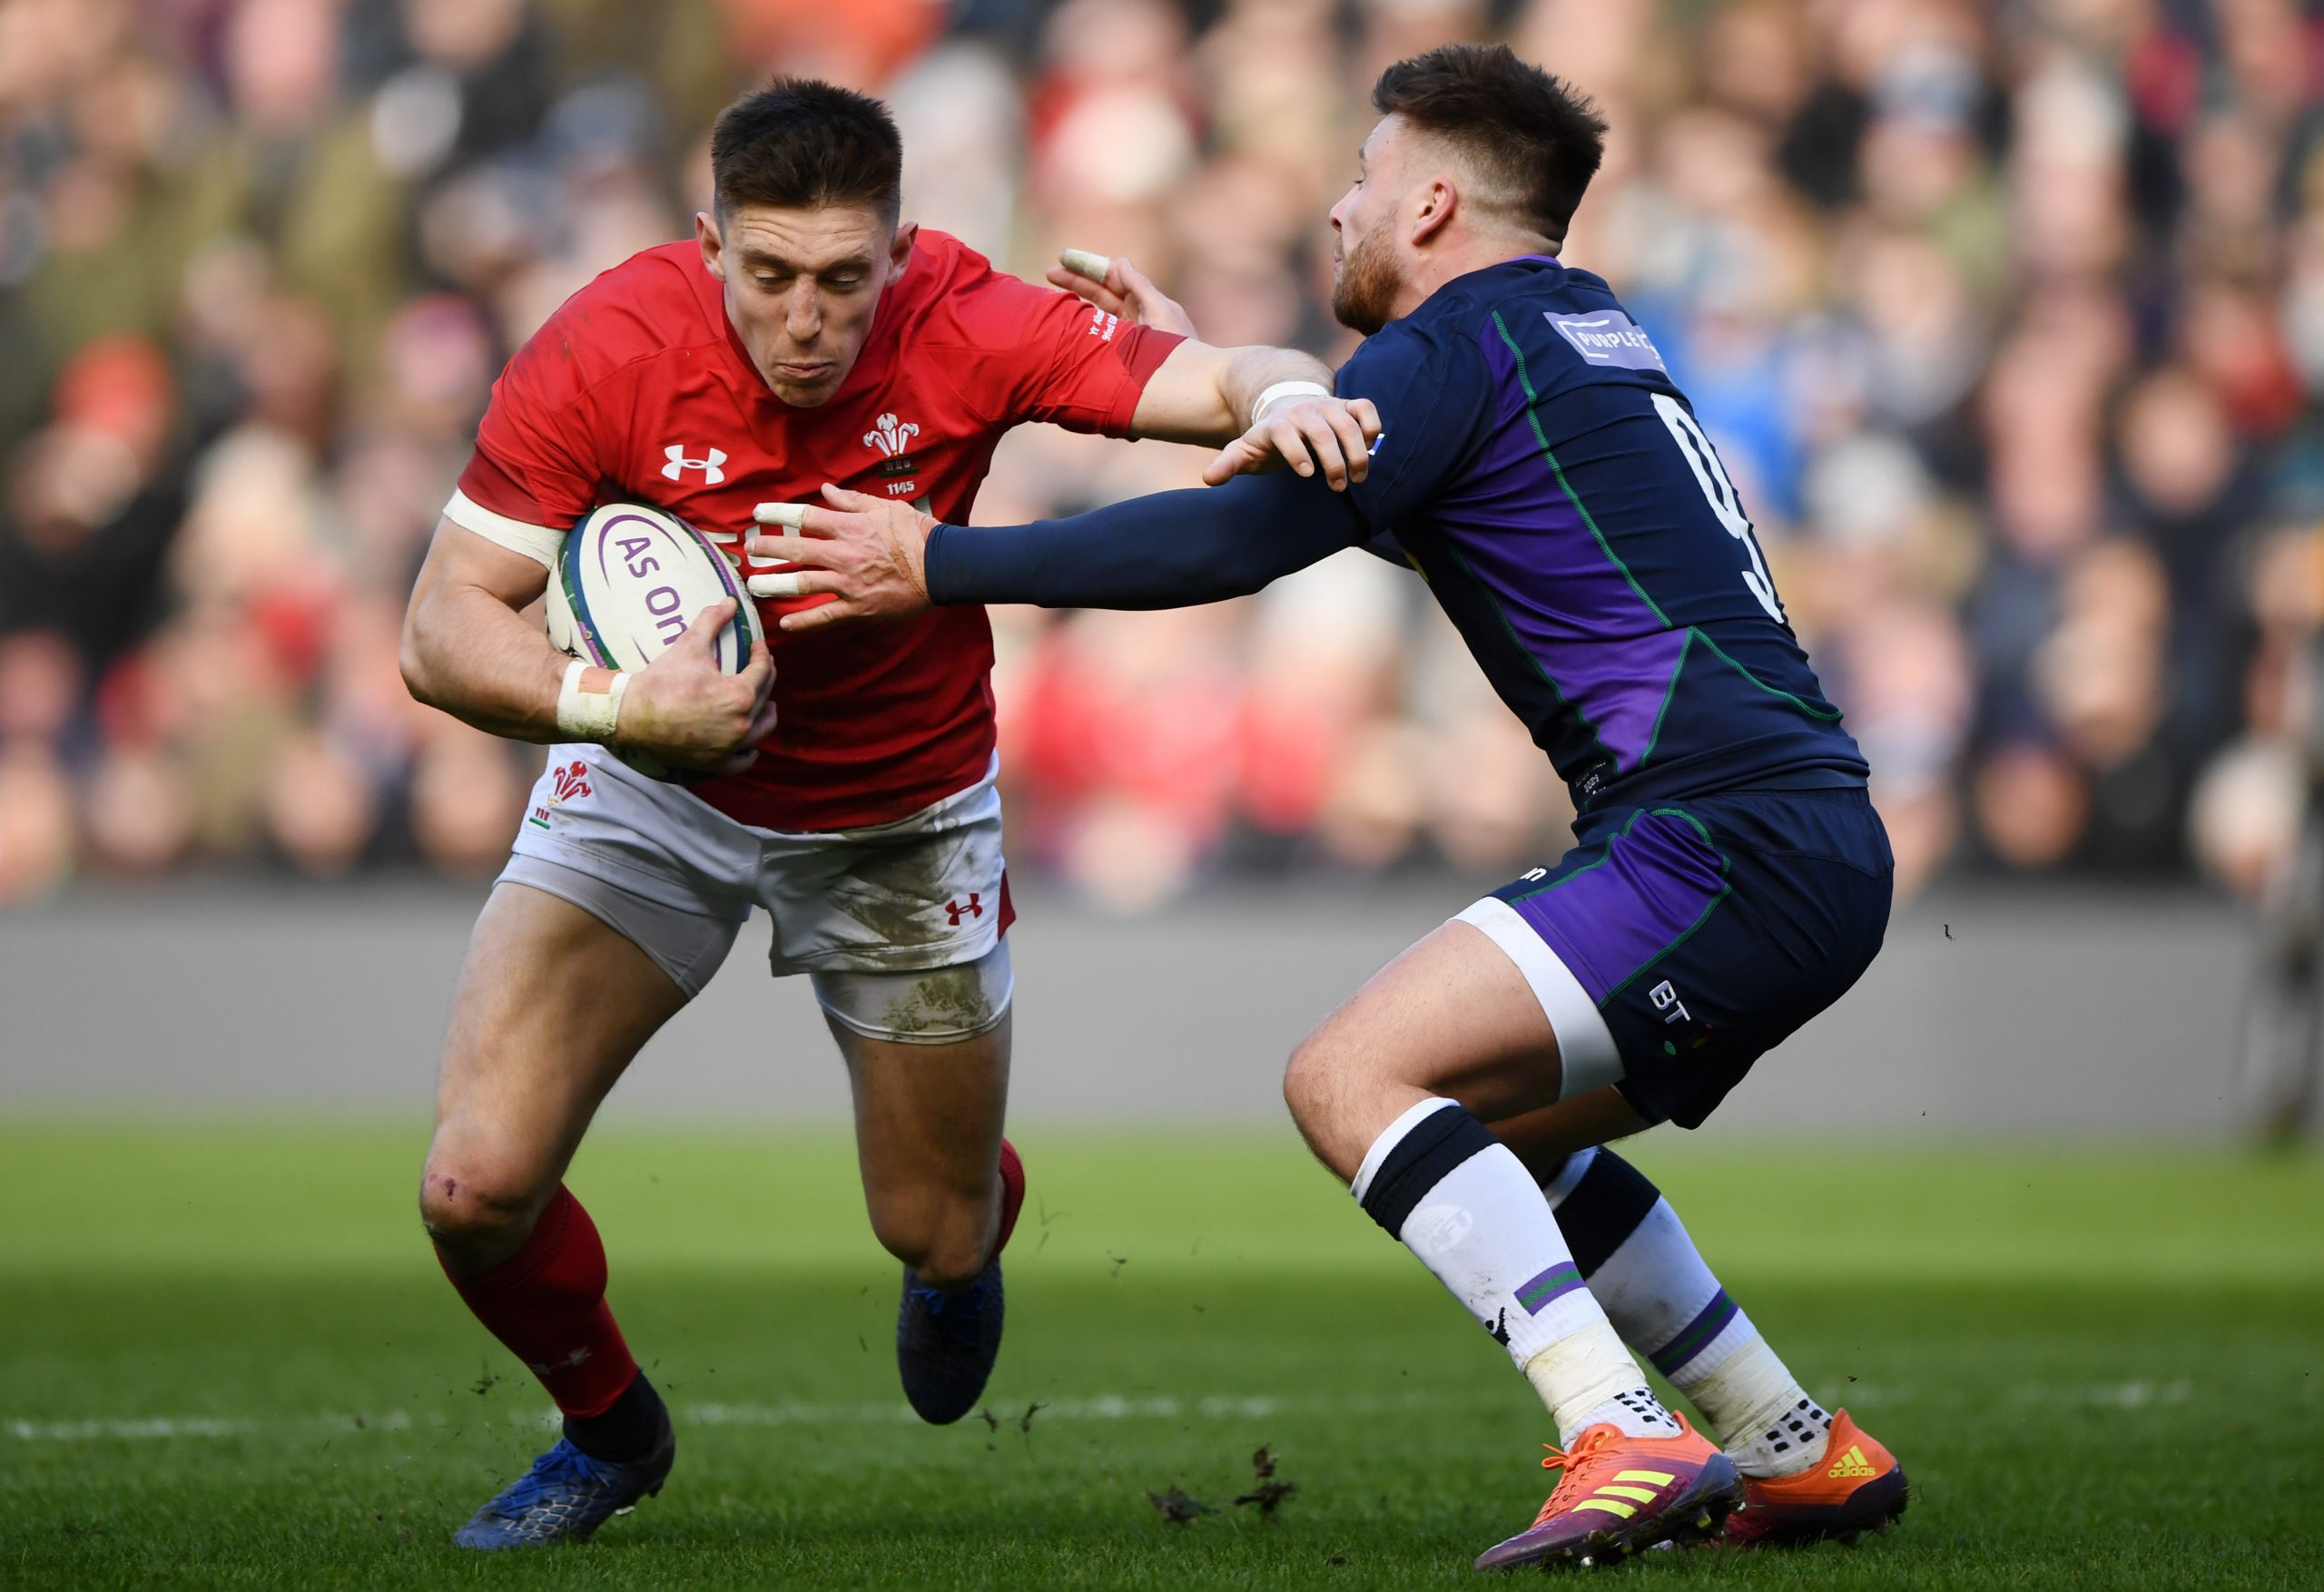 Principality premiership fixtures and betting golf each way betting rules bet365 live streaming